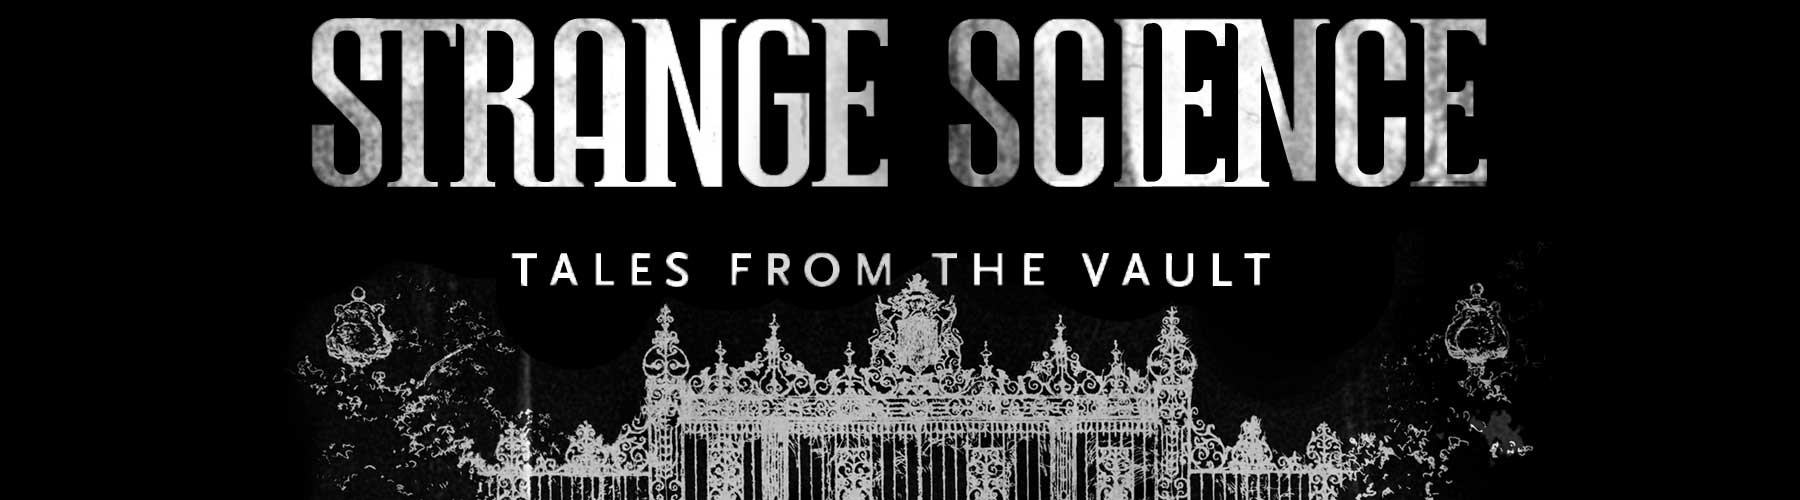 Strange Science: Tales from the Vault